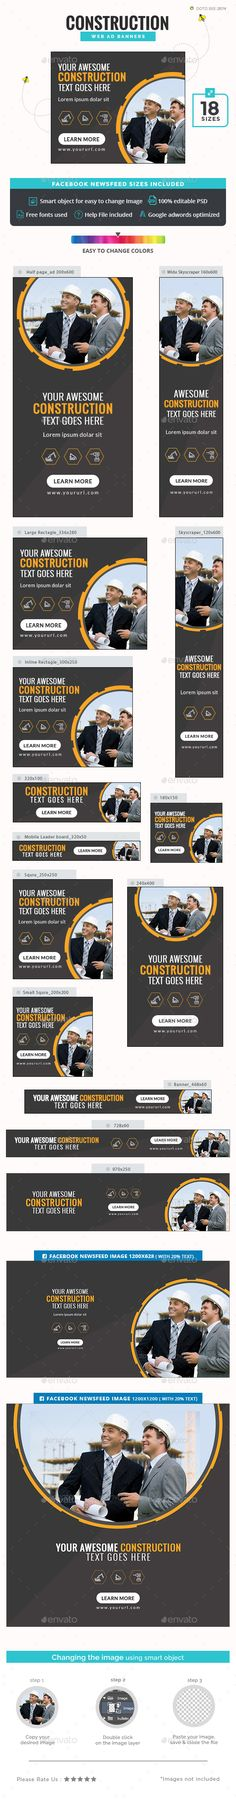 Construction Banners — Photoshop PSD #house #animated banner • Available here → https://graphicriver.net/item/construction-banners/20062558?ref=pxcr